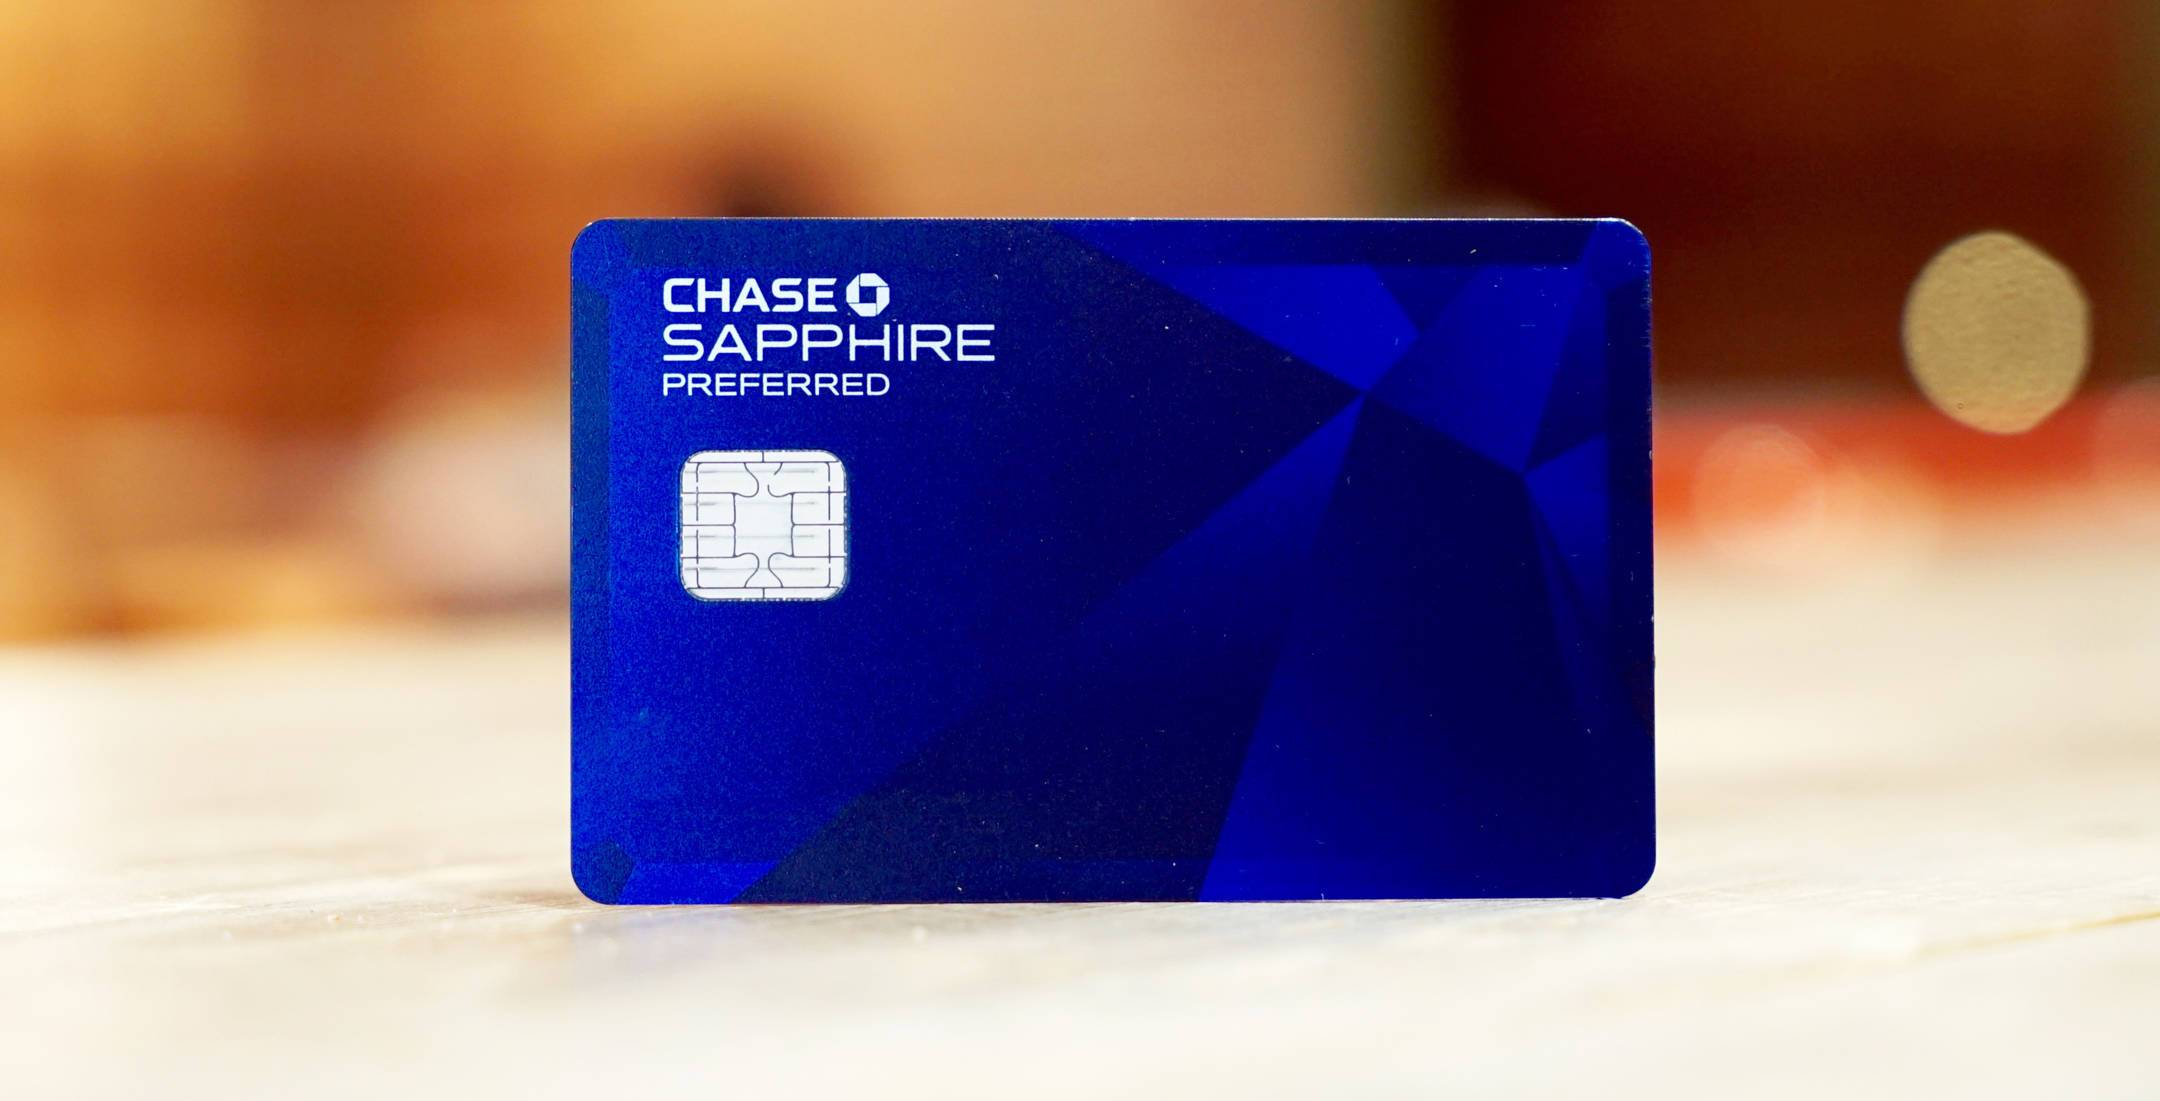 Low Annual Fee Dining Travel Rewards Plus 60 000 Points On Sign Up Make Chase Sapphire Preferred Our Choice Bgr